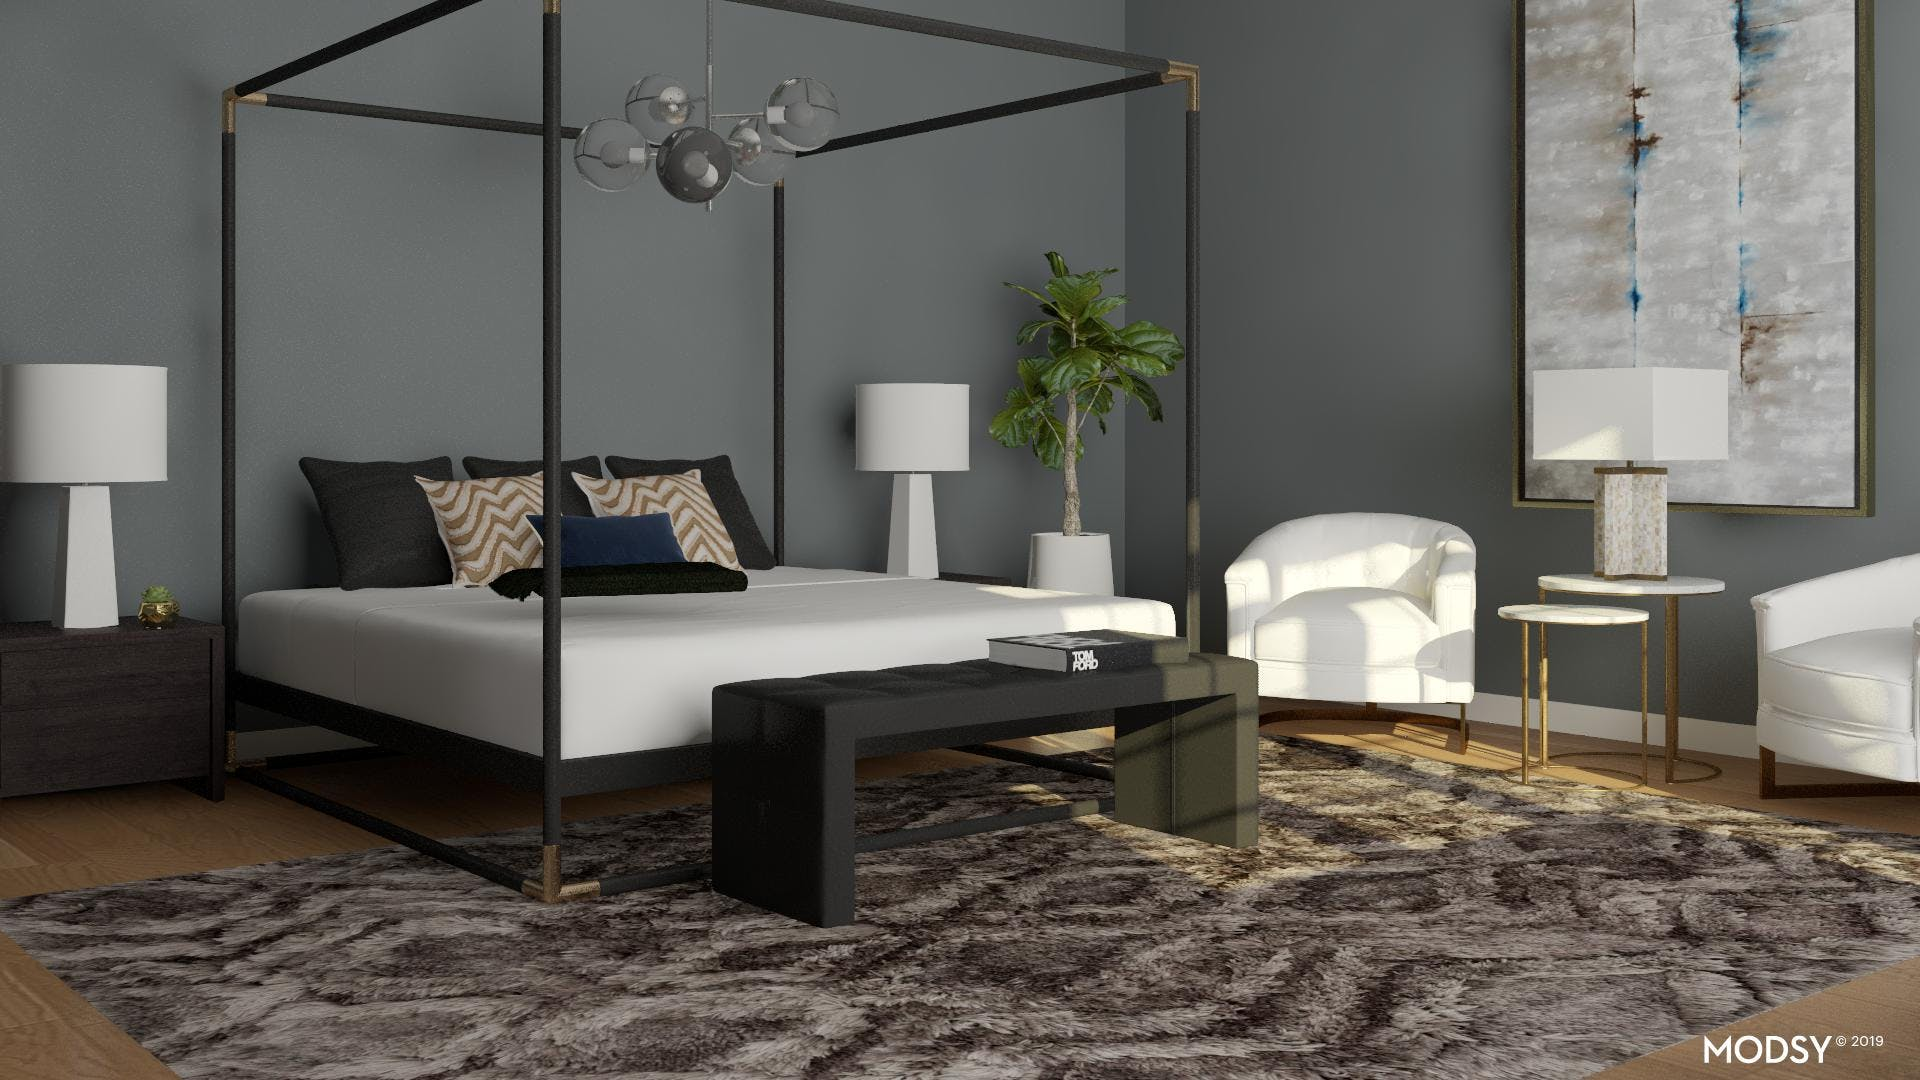 Moody Bedroom with Modern Style